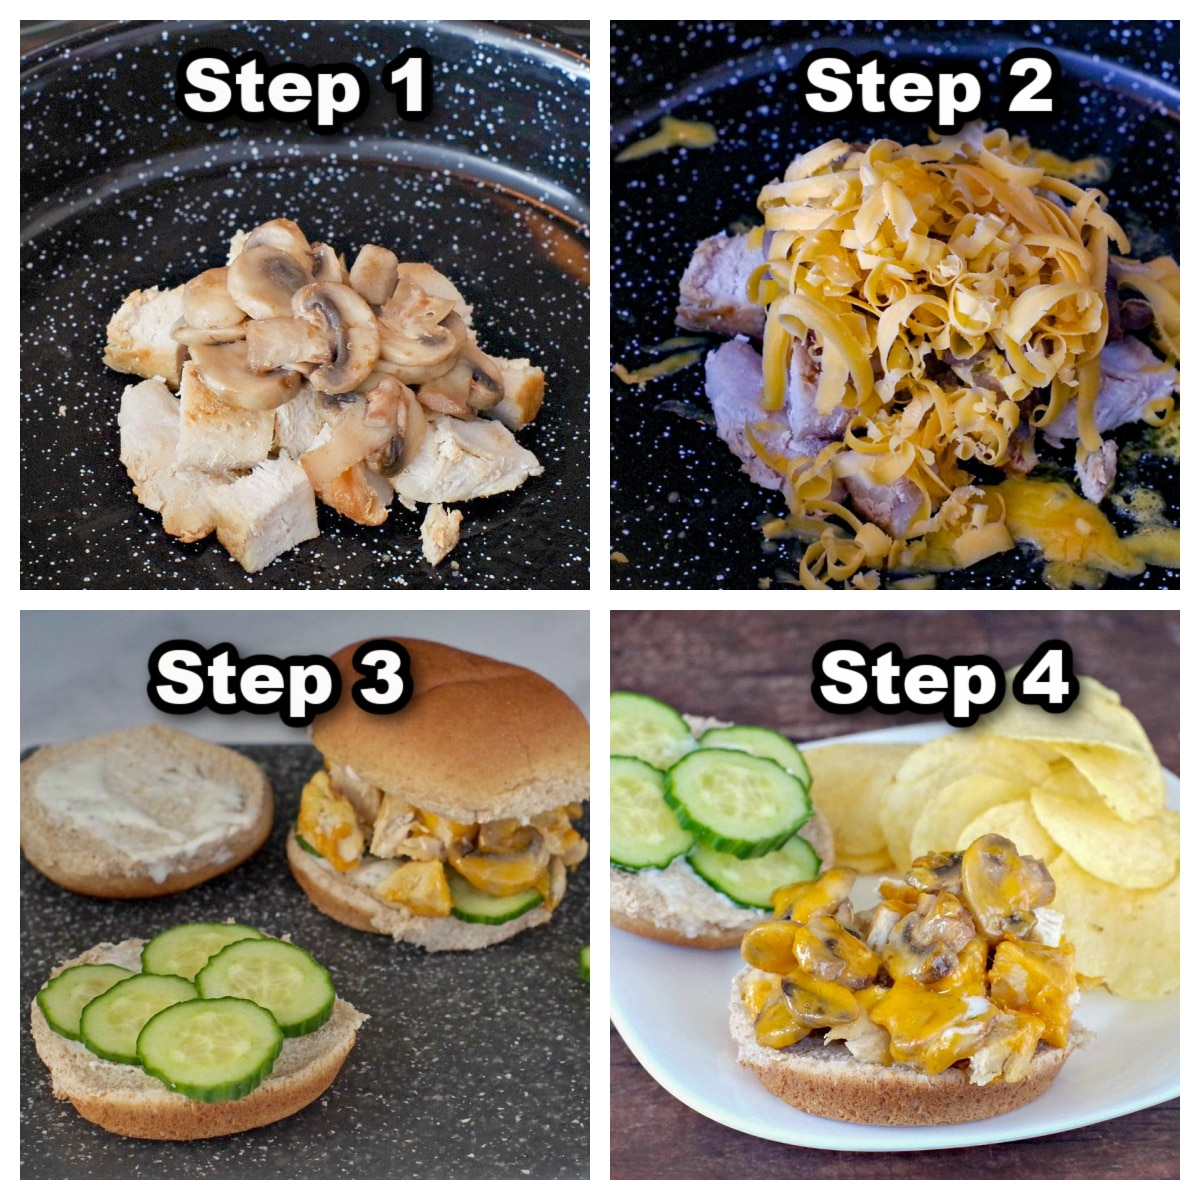 collage of 4 photos showing steps to make a chicken breast burger